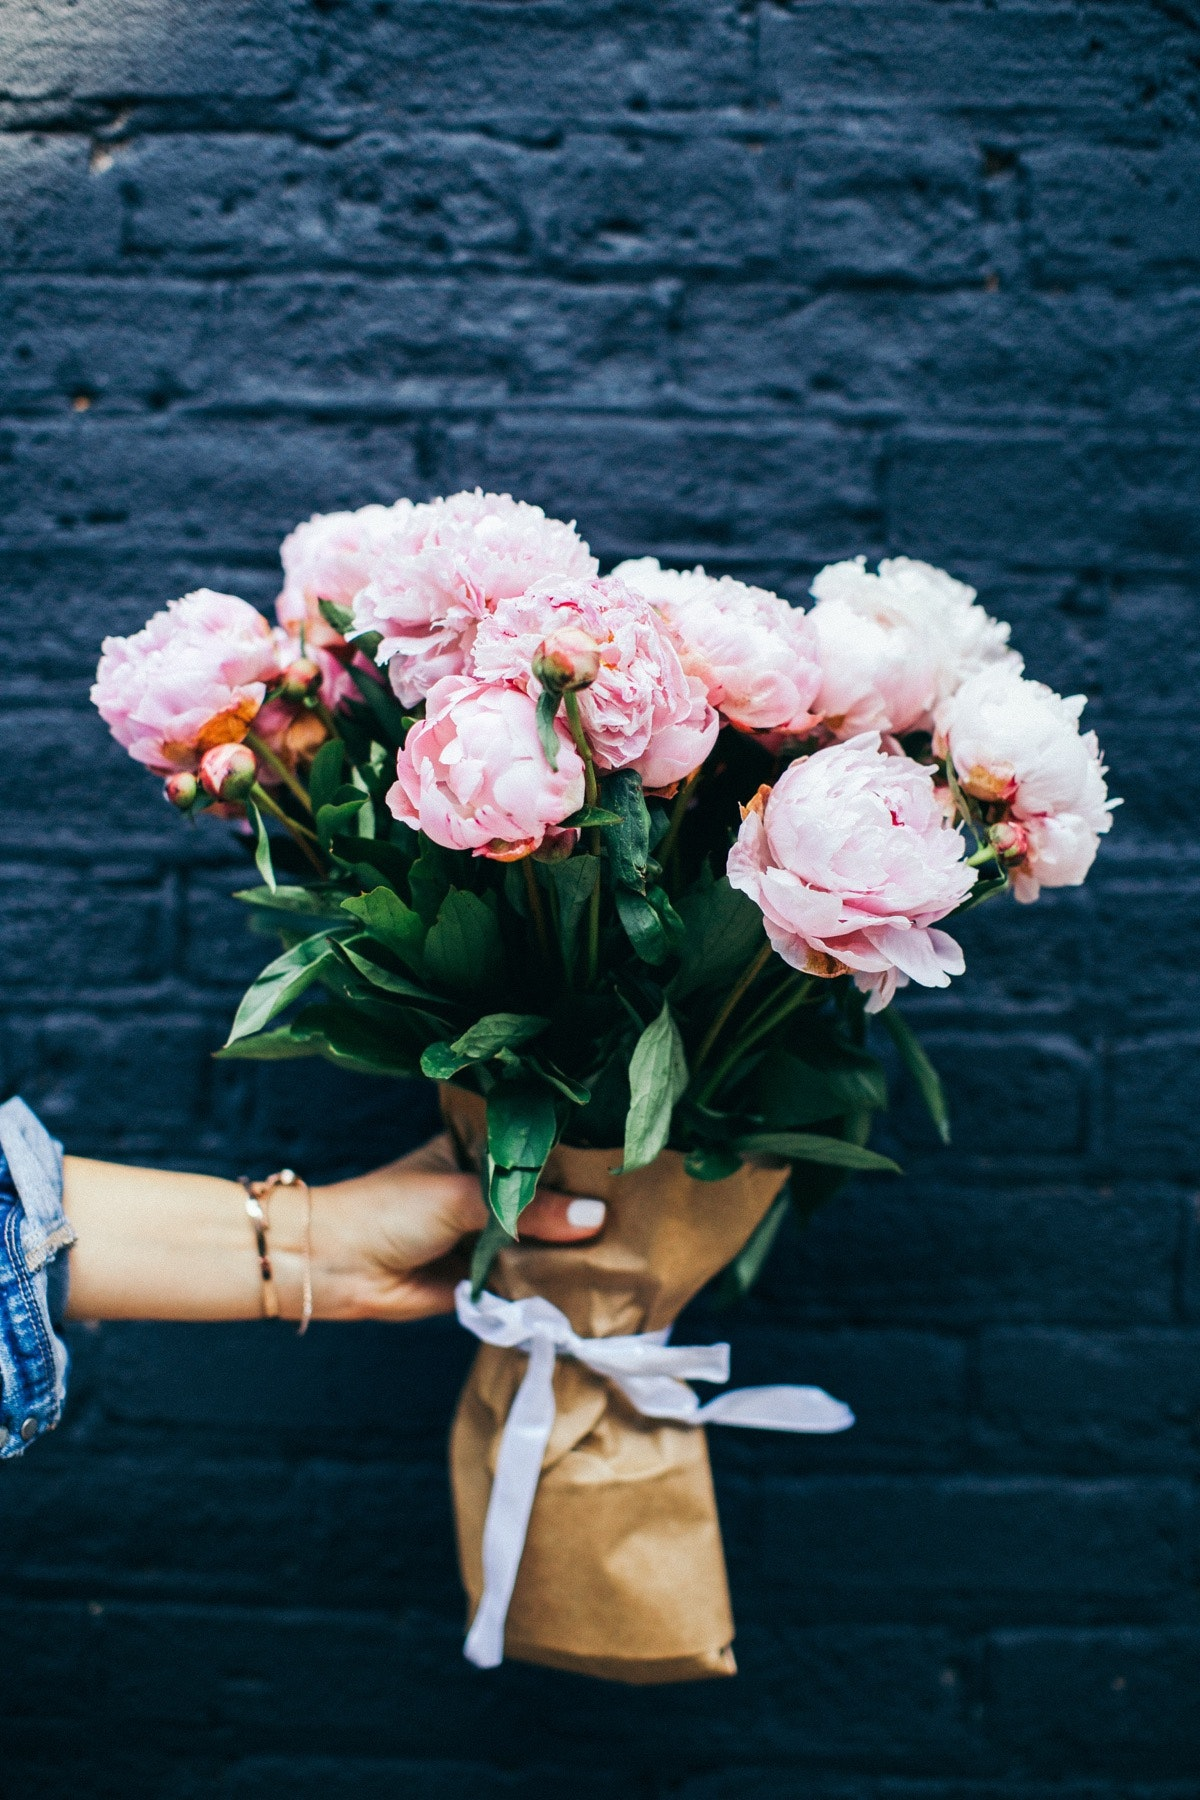 1000 Beautiful Bouquet Of Flowers Photos Pexels Free Stock Photos